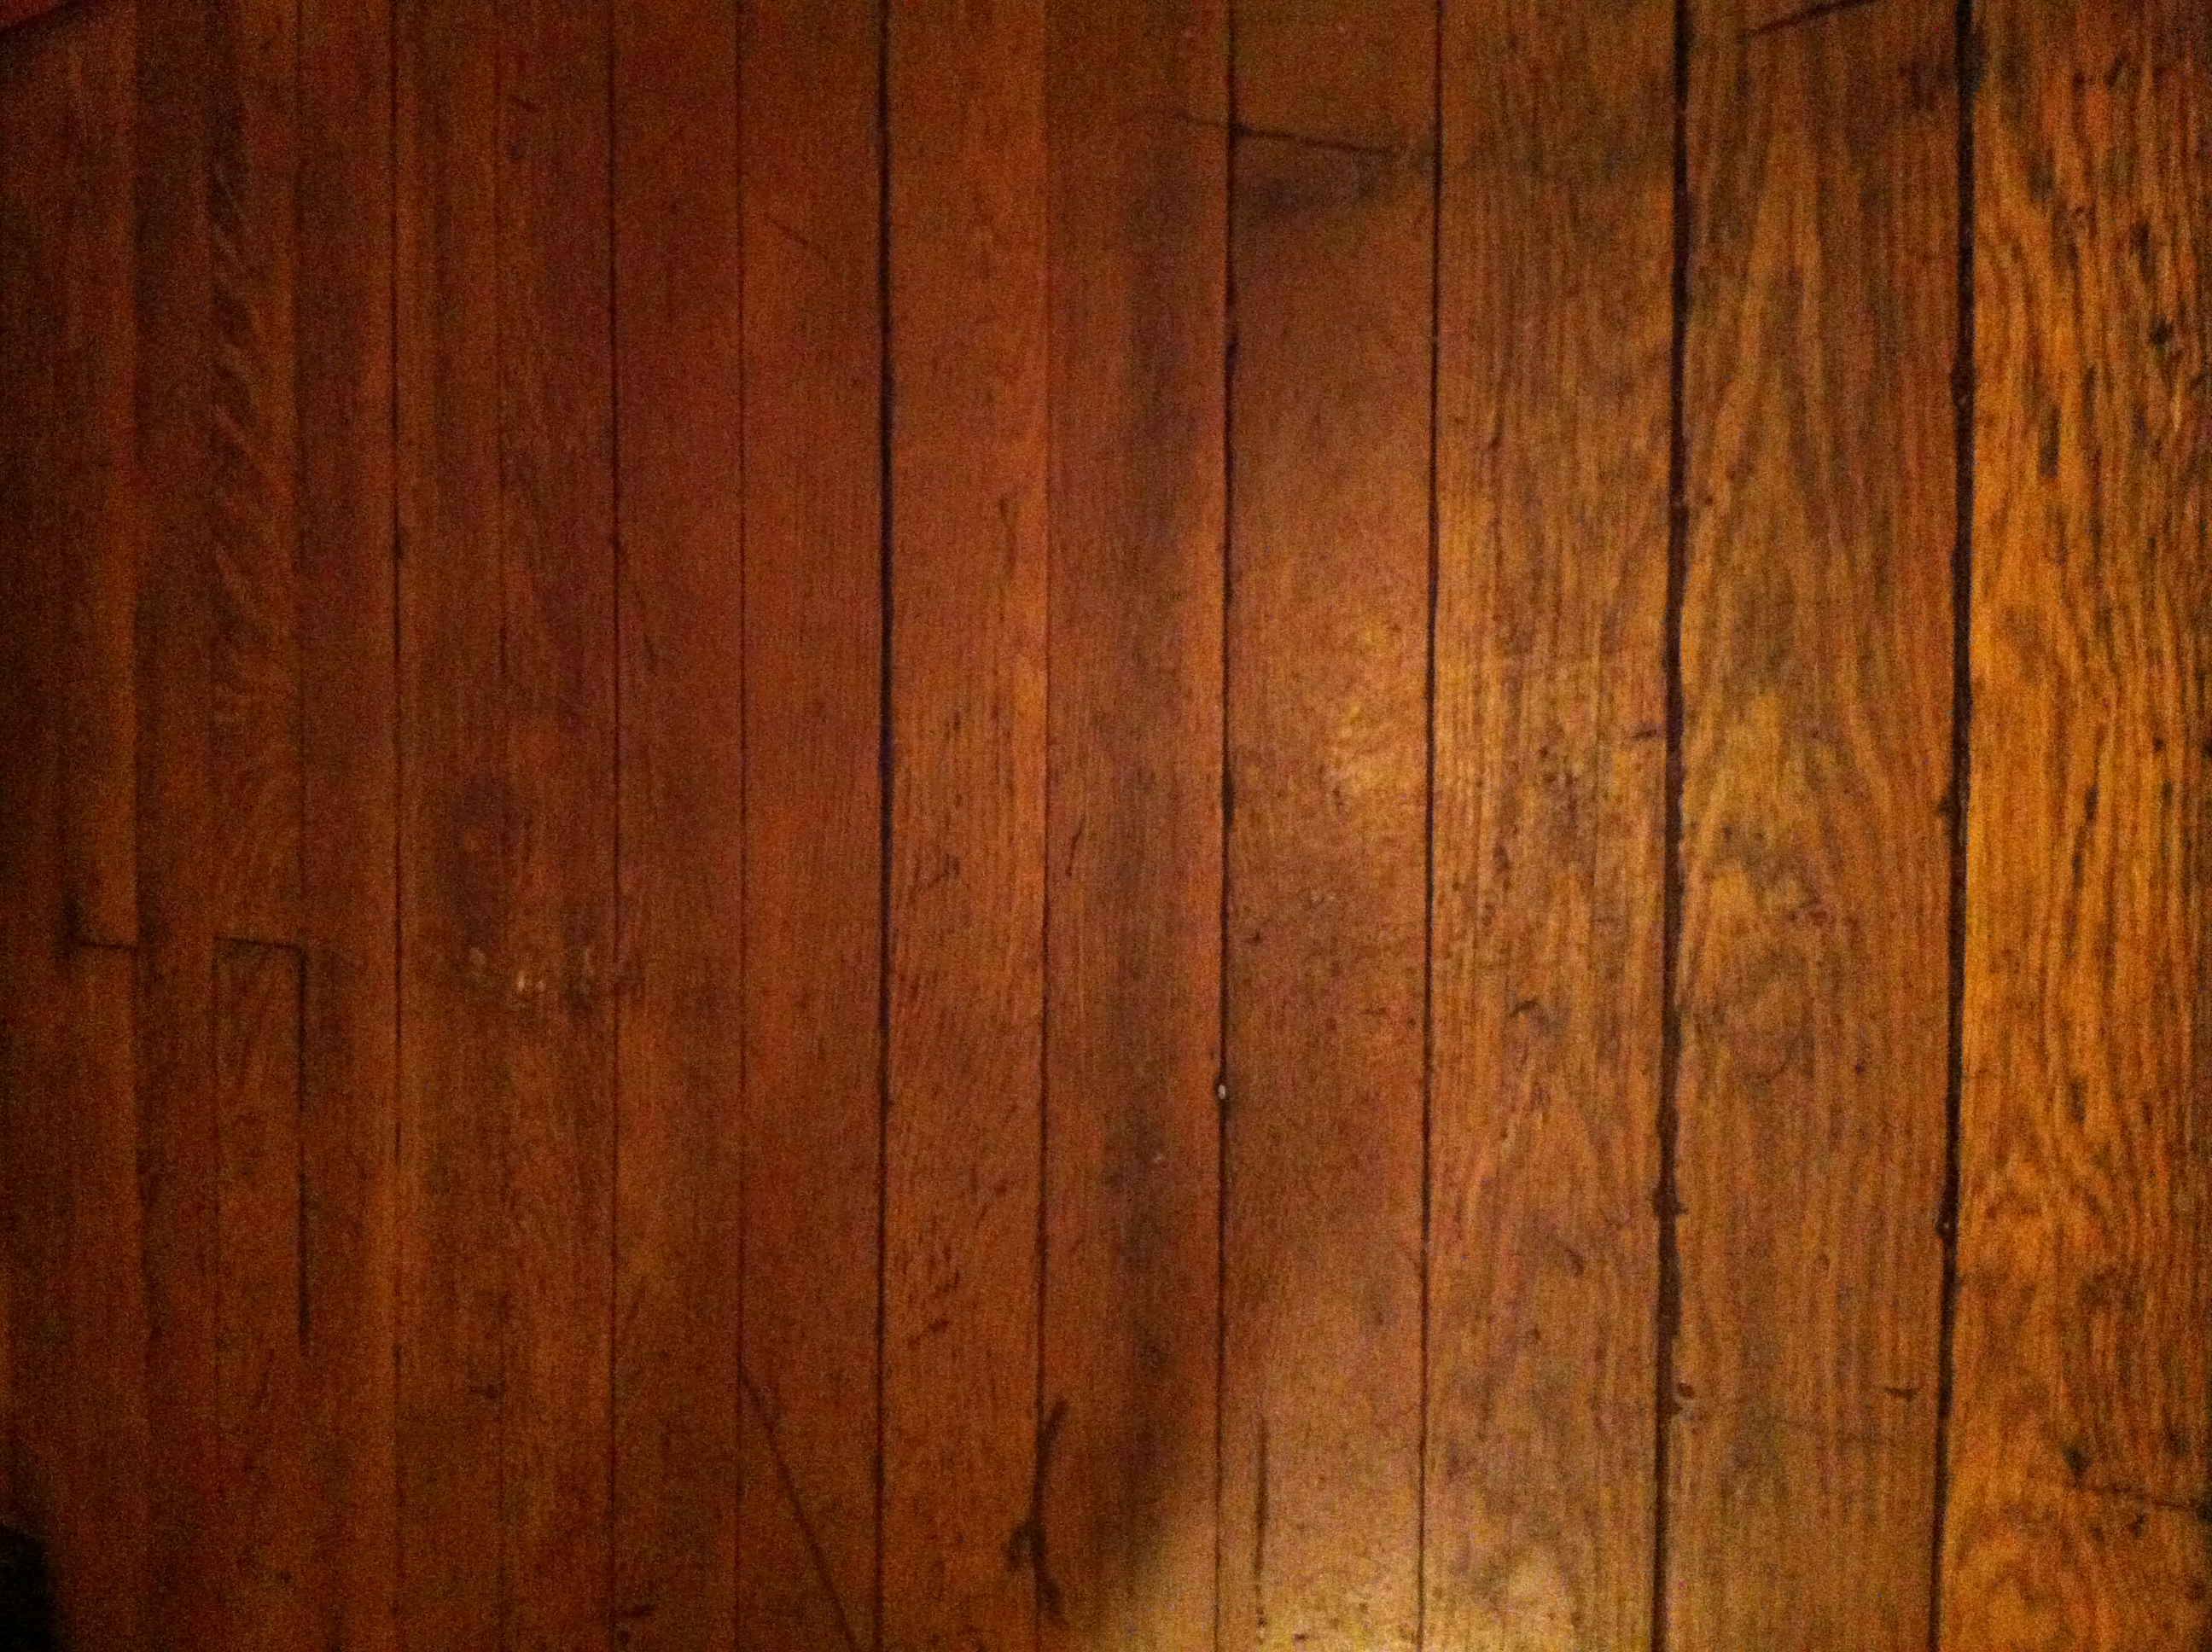 Antique Hardwood Flooring reclaimed antique flooring antique elm Antique Hardwood Floors